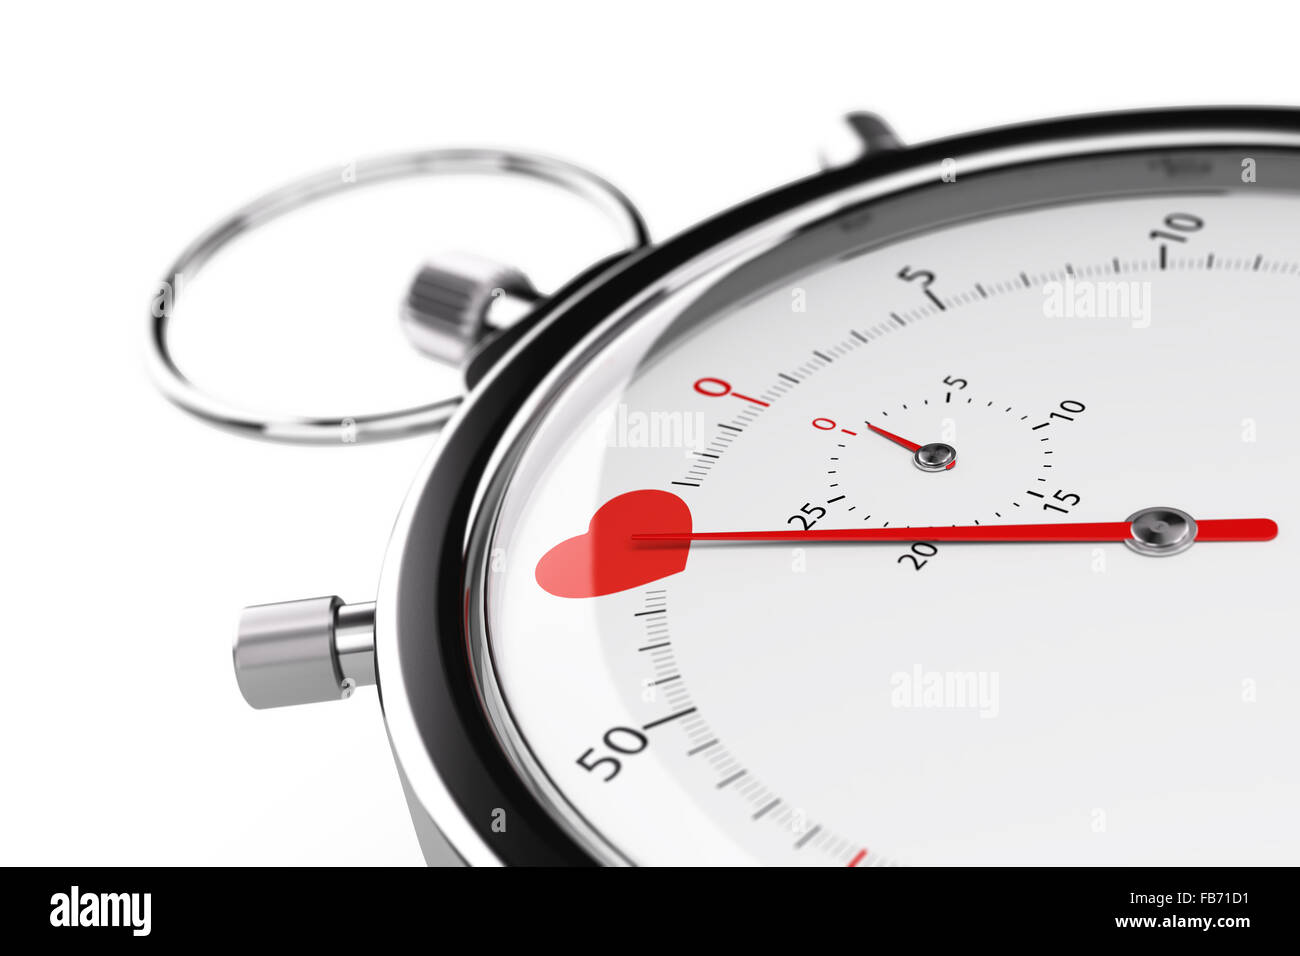 One heart on a chronometer over white background. 3D illustration of speed dating concept or love at first sight. - Stock Image